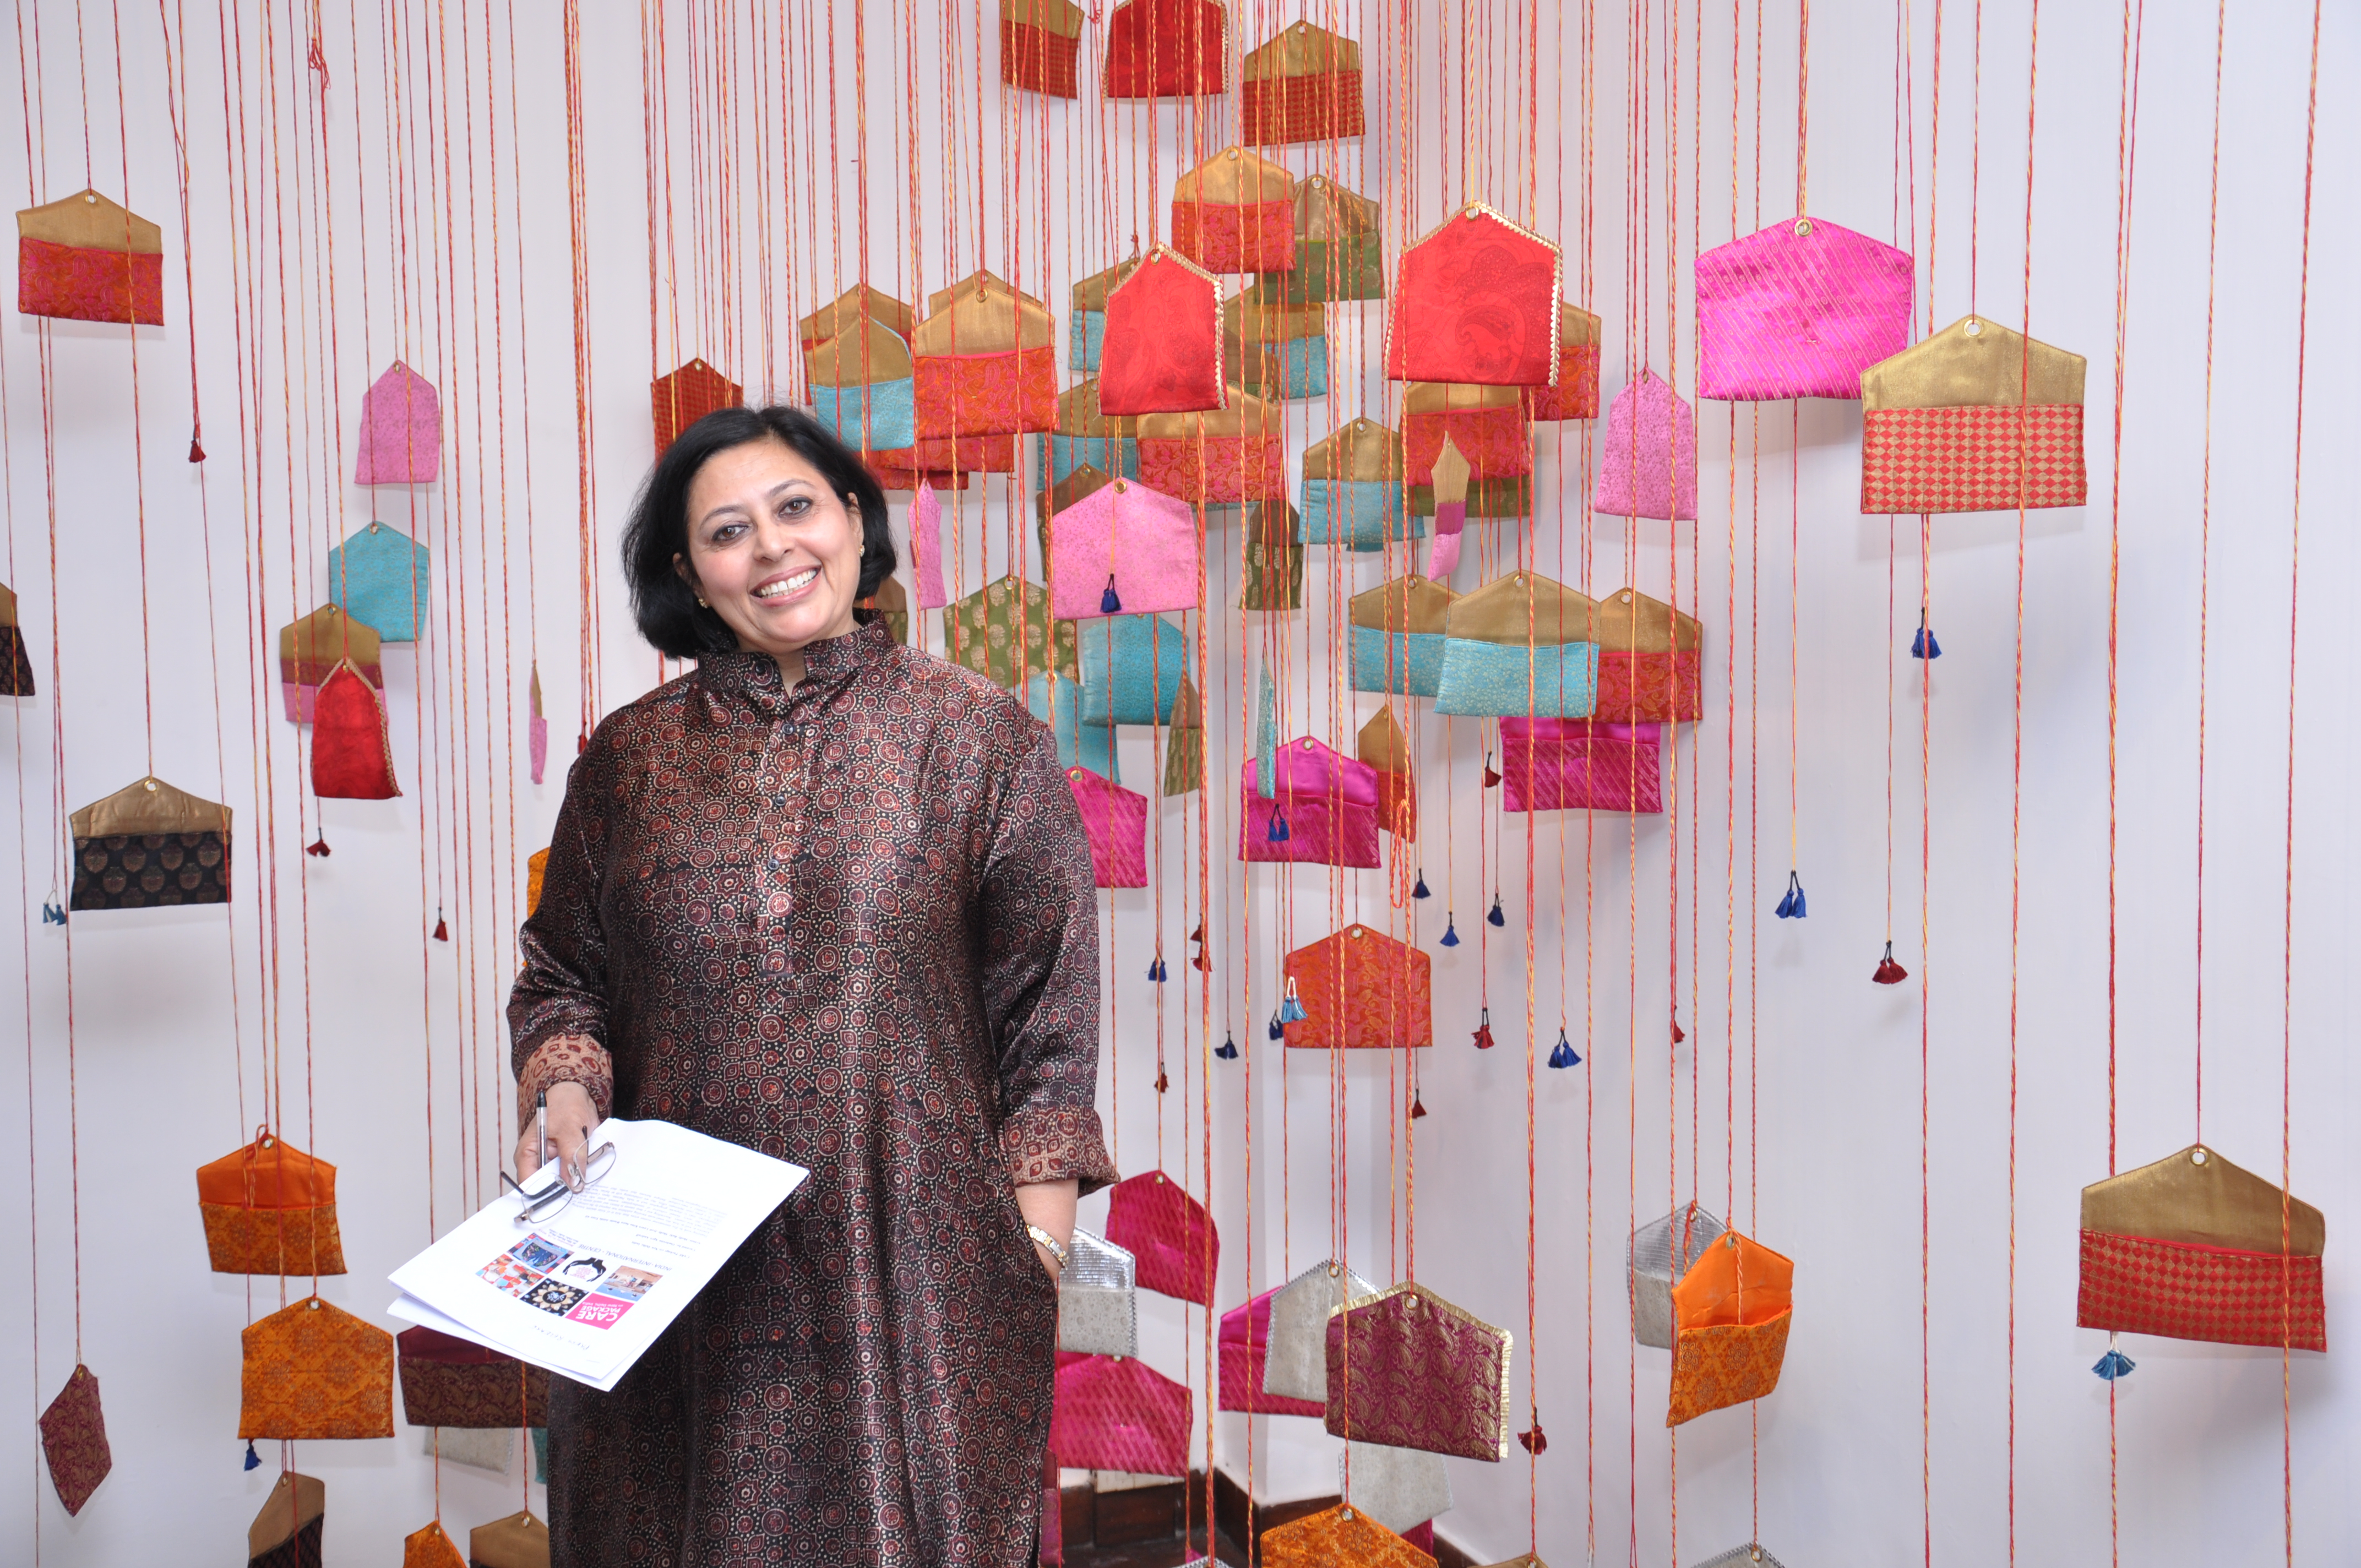 'CARE Package c/o New Delhi India' Re-opens in India International Centre Lodhi road, New Delhi